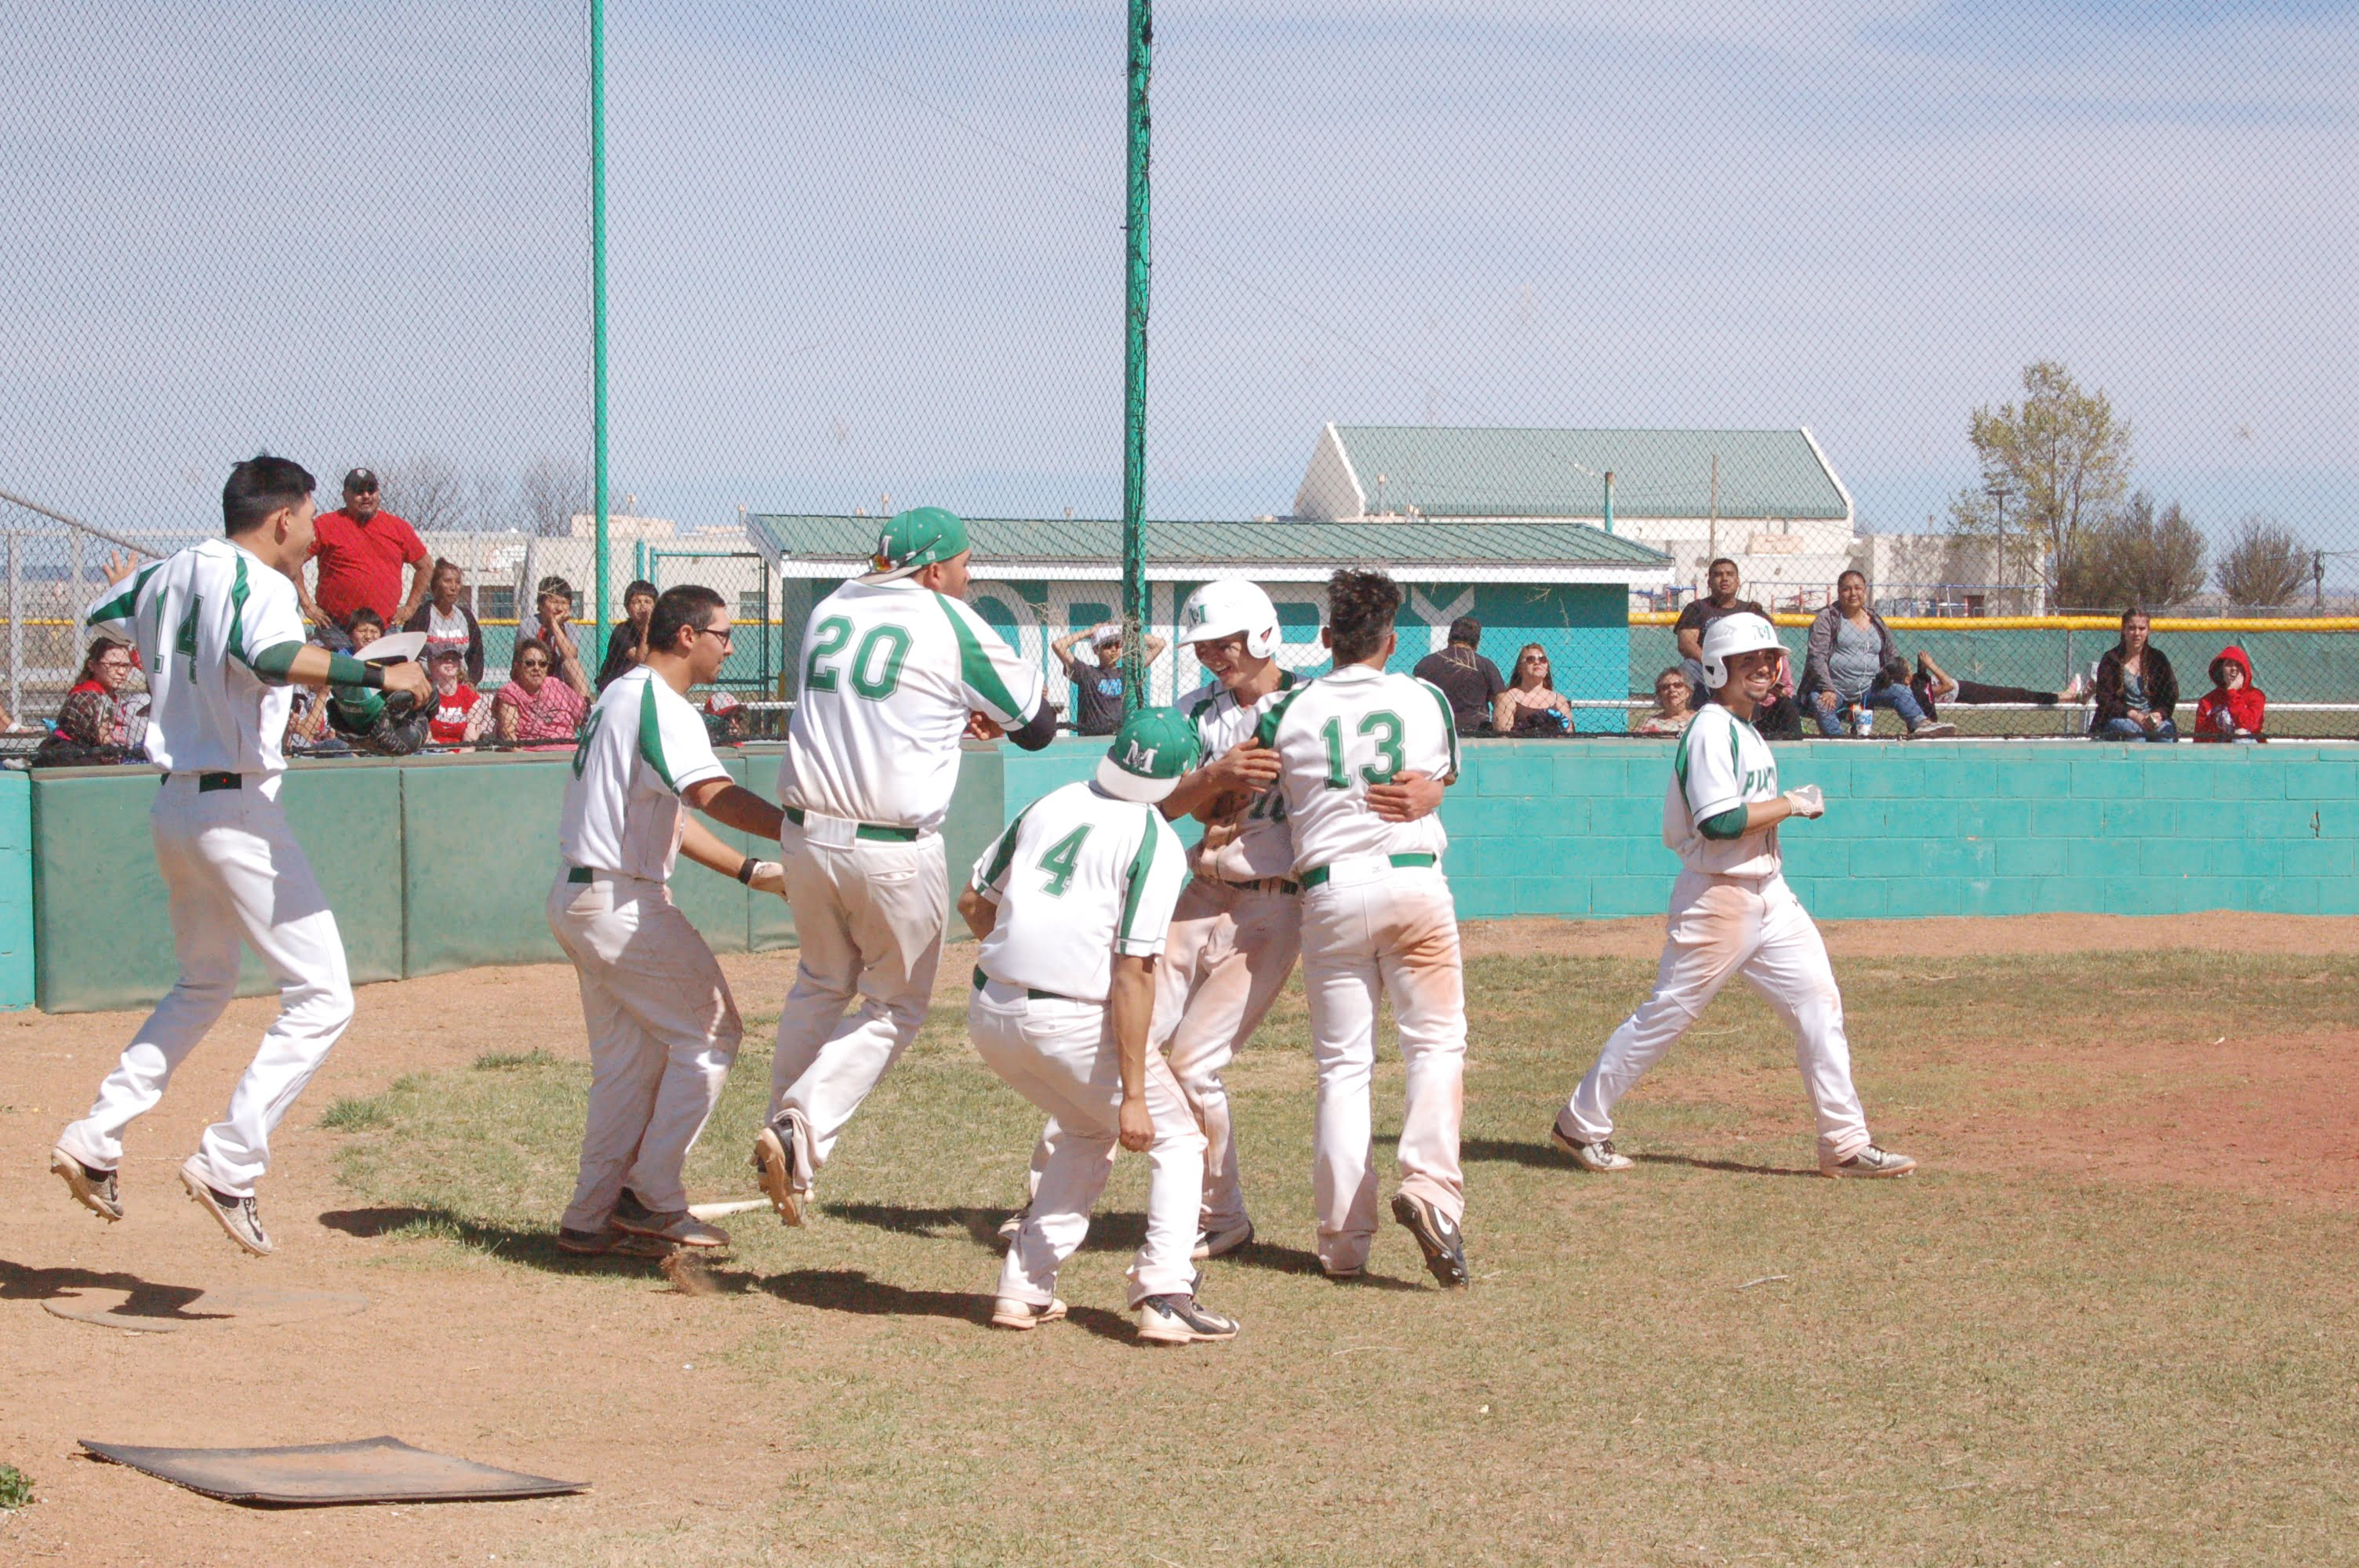 Pintos' walk-off hit completes doubleheader sweep over Bernalillo